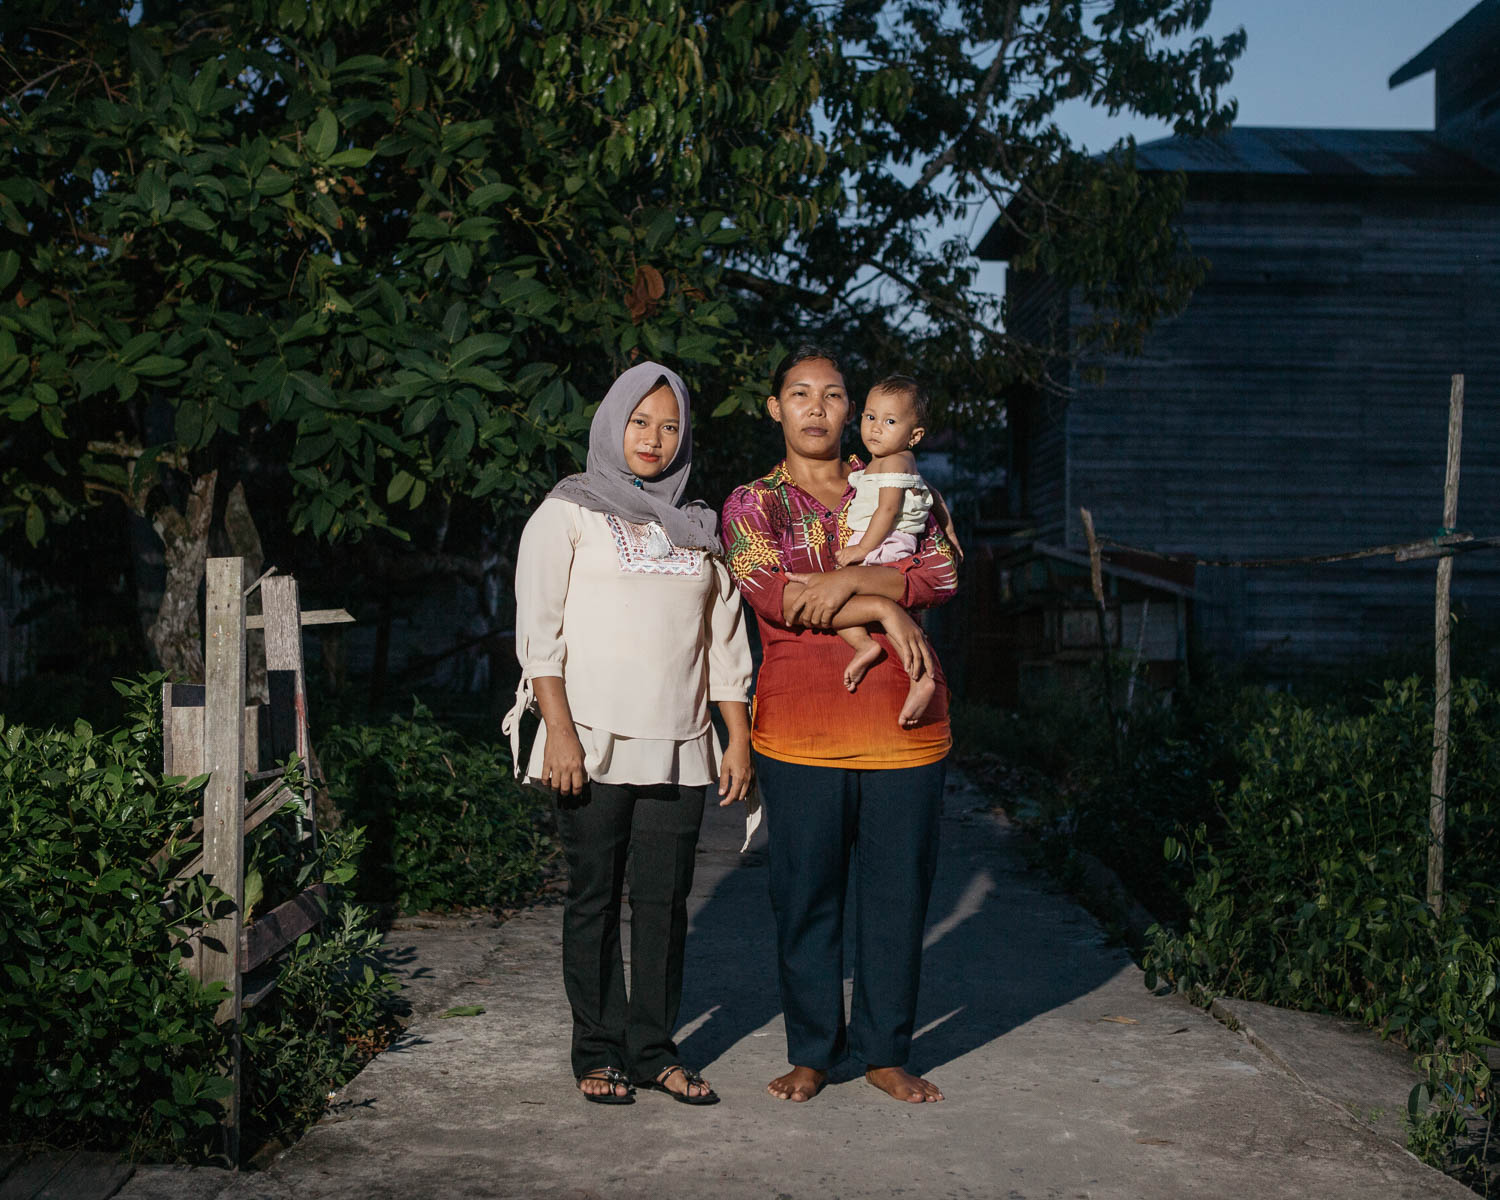 Portrait of Riska Asmaul Lifa (left) and Halisa (right), villagers from Mendawai who are benefited from Katingan Mentaya Project's micro credit program.